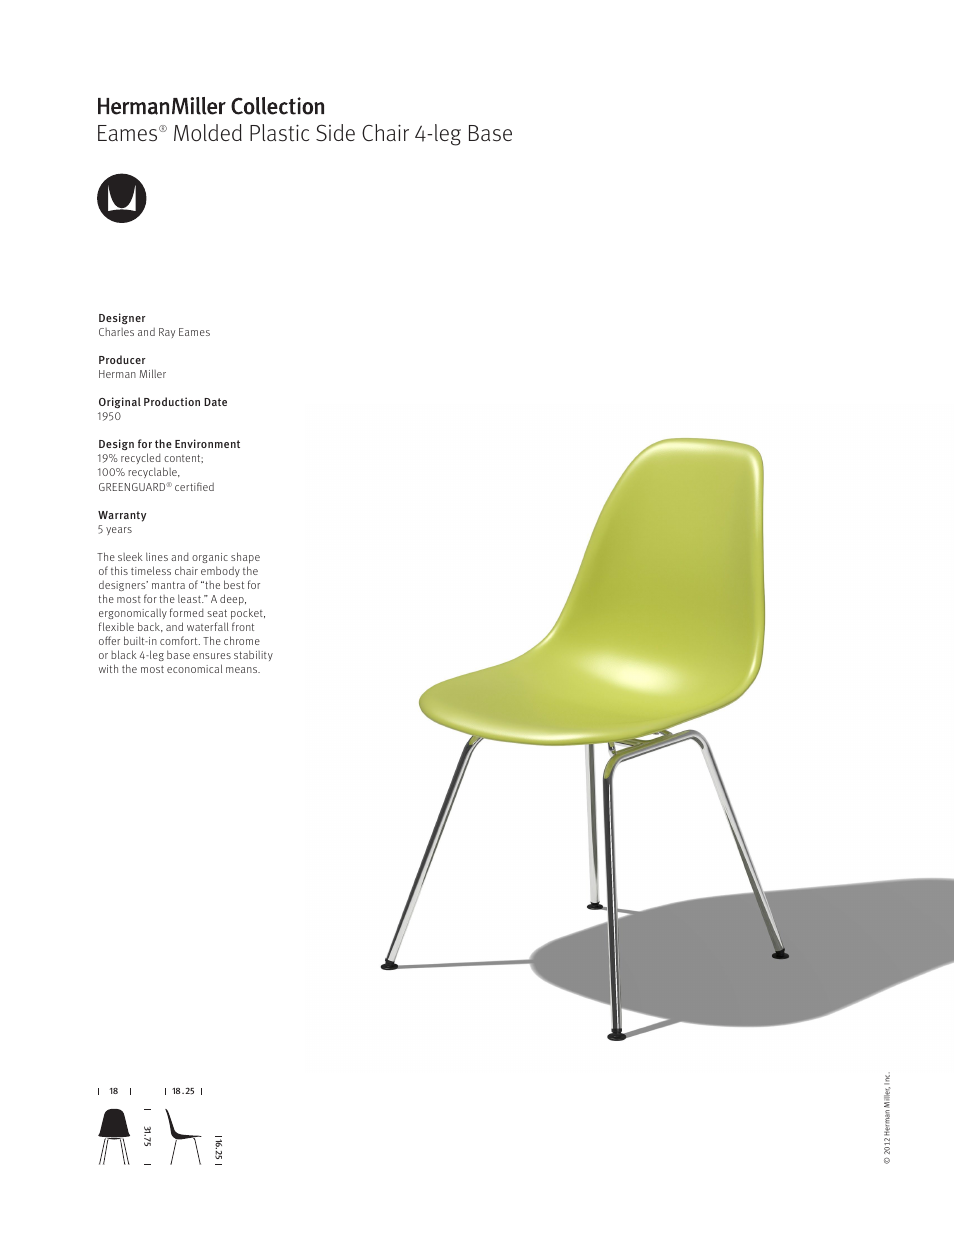 Herman Miller Eames Molded Plastic Side Chair 4 Leg Base   Product Sheet  User Manual | 1 Page